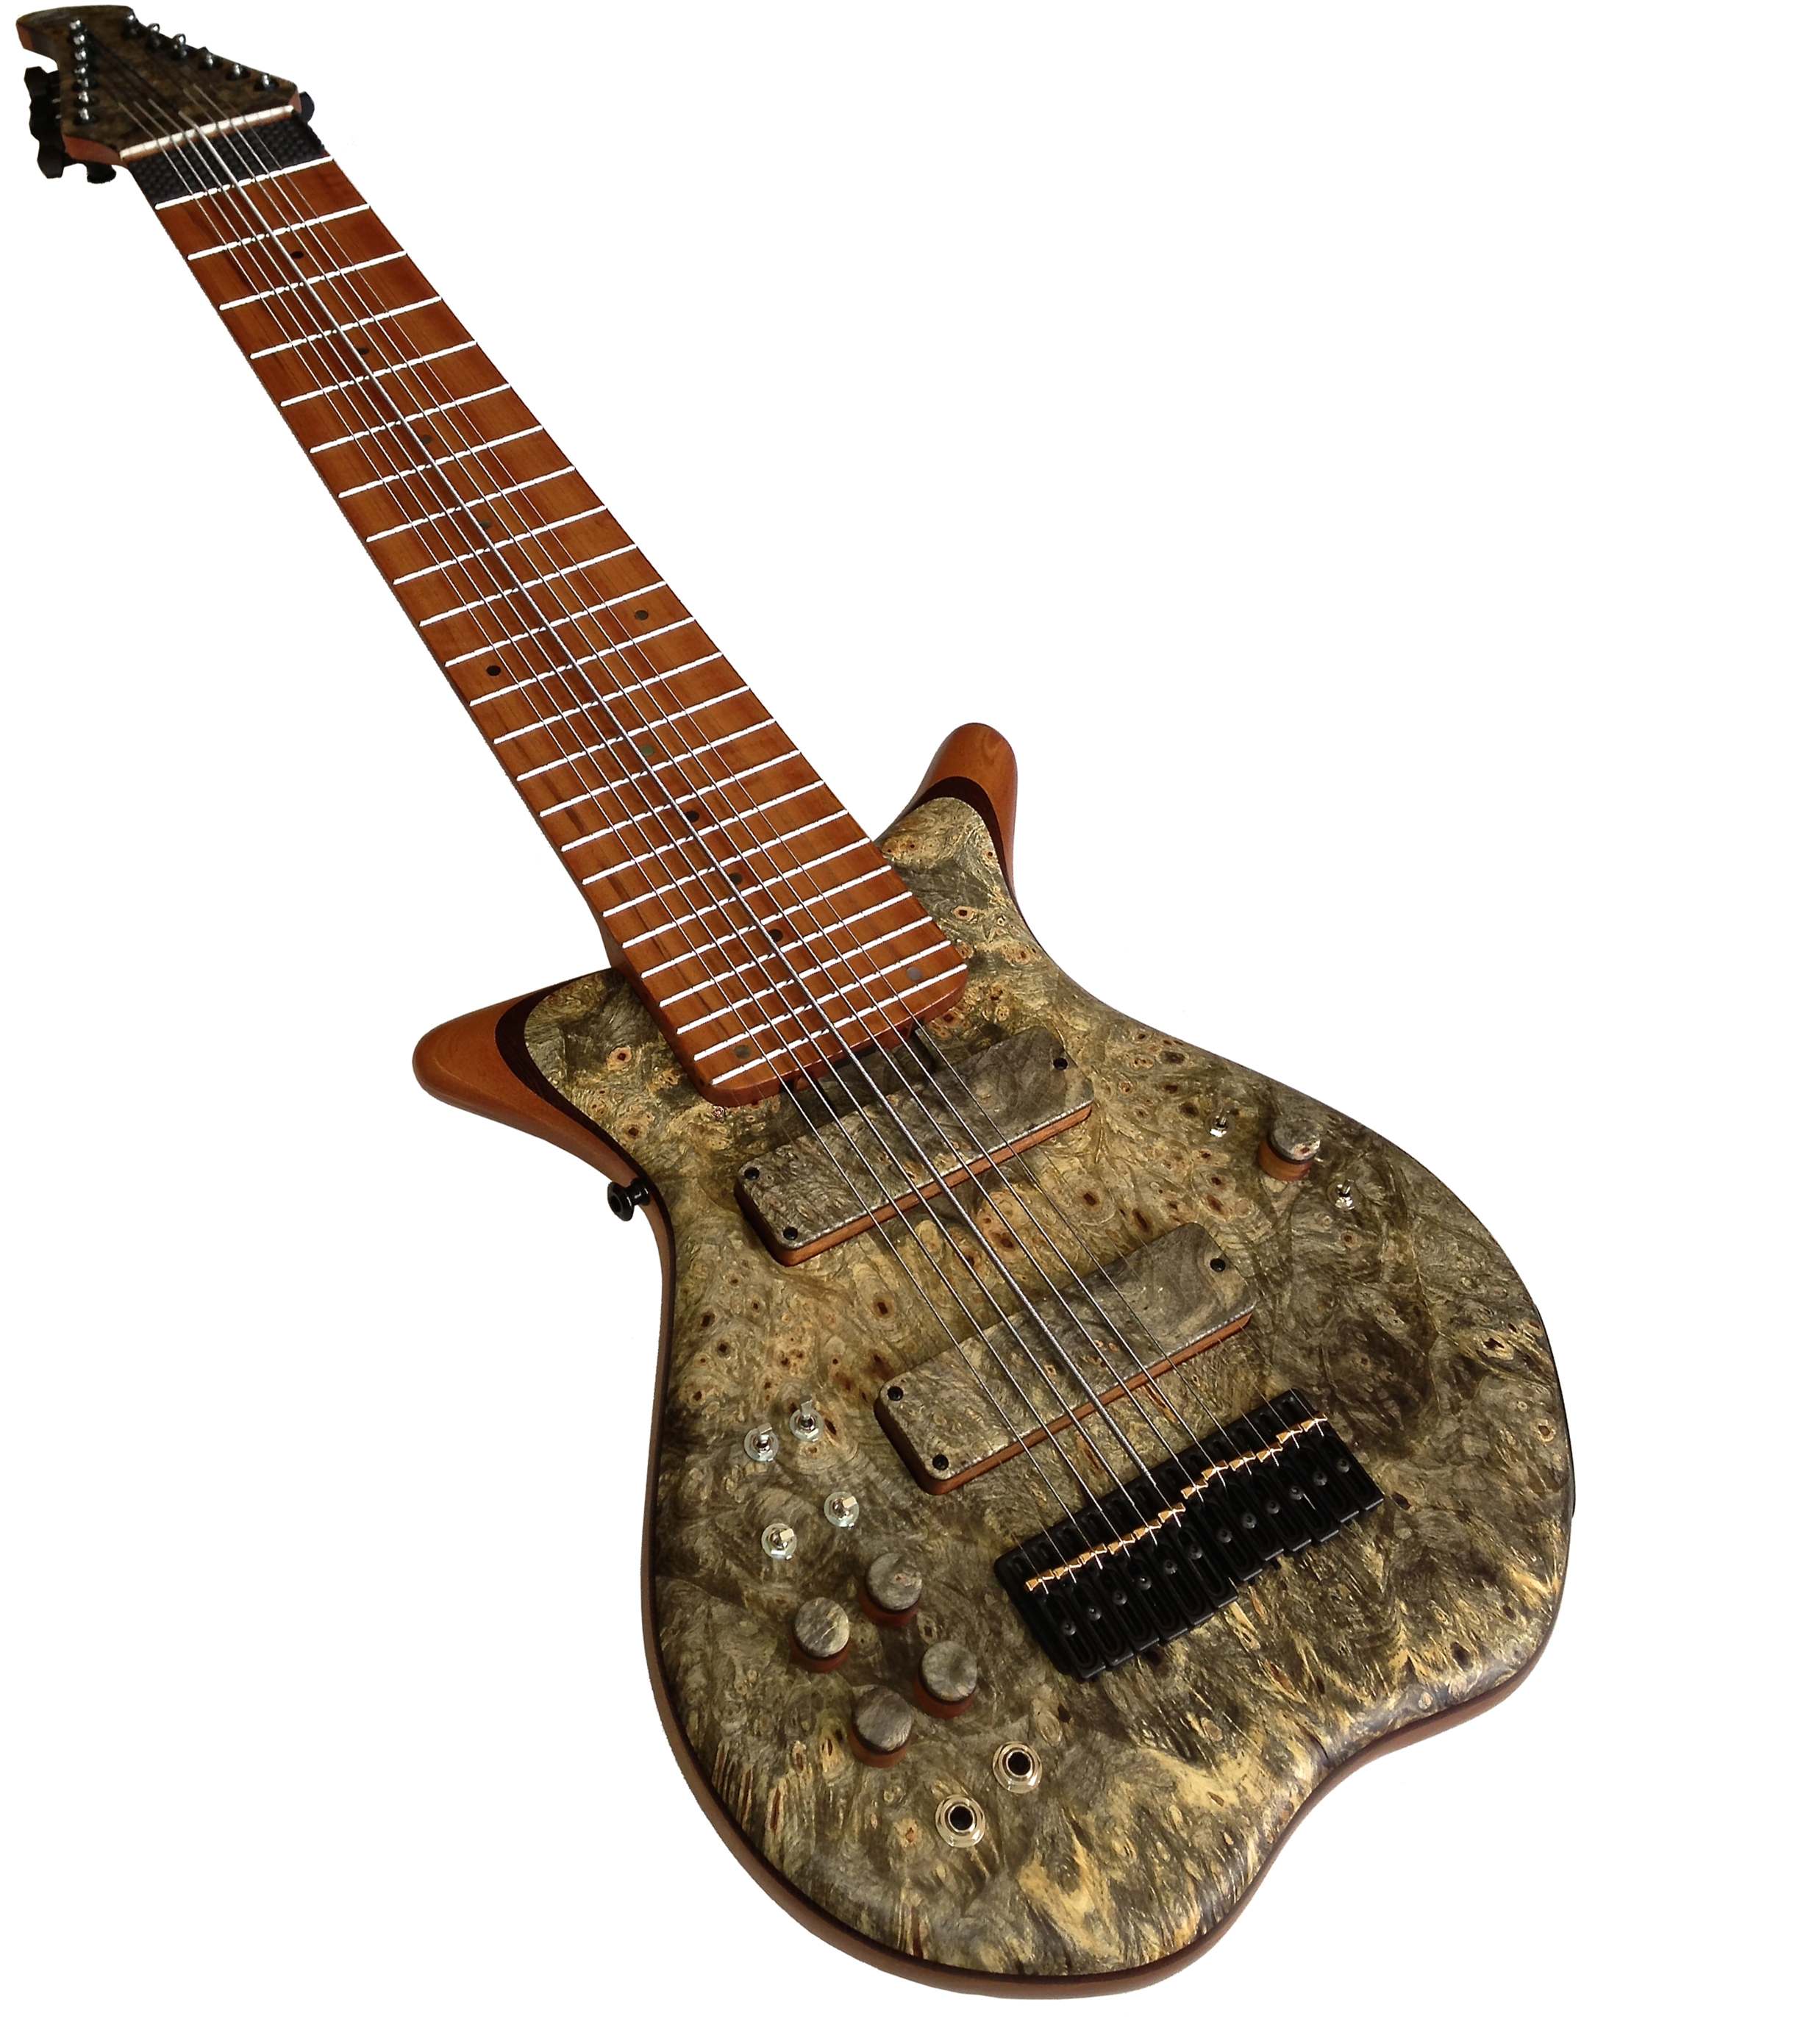 Warr Trey Gun Signature Series TGSS 12-String  12 Piezo / 12 MIDI Buckeye Burl top on a Mahogany body core and a Wenge pinstripe Warr Custom Hand-wound Pickups Custom wood pickup shells and knobs